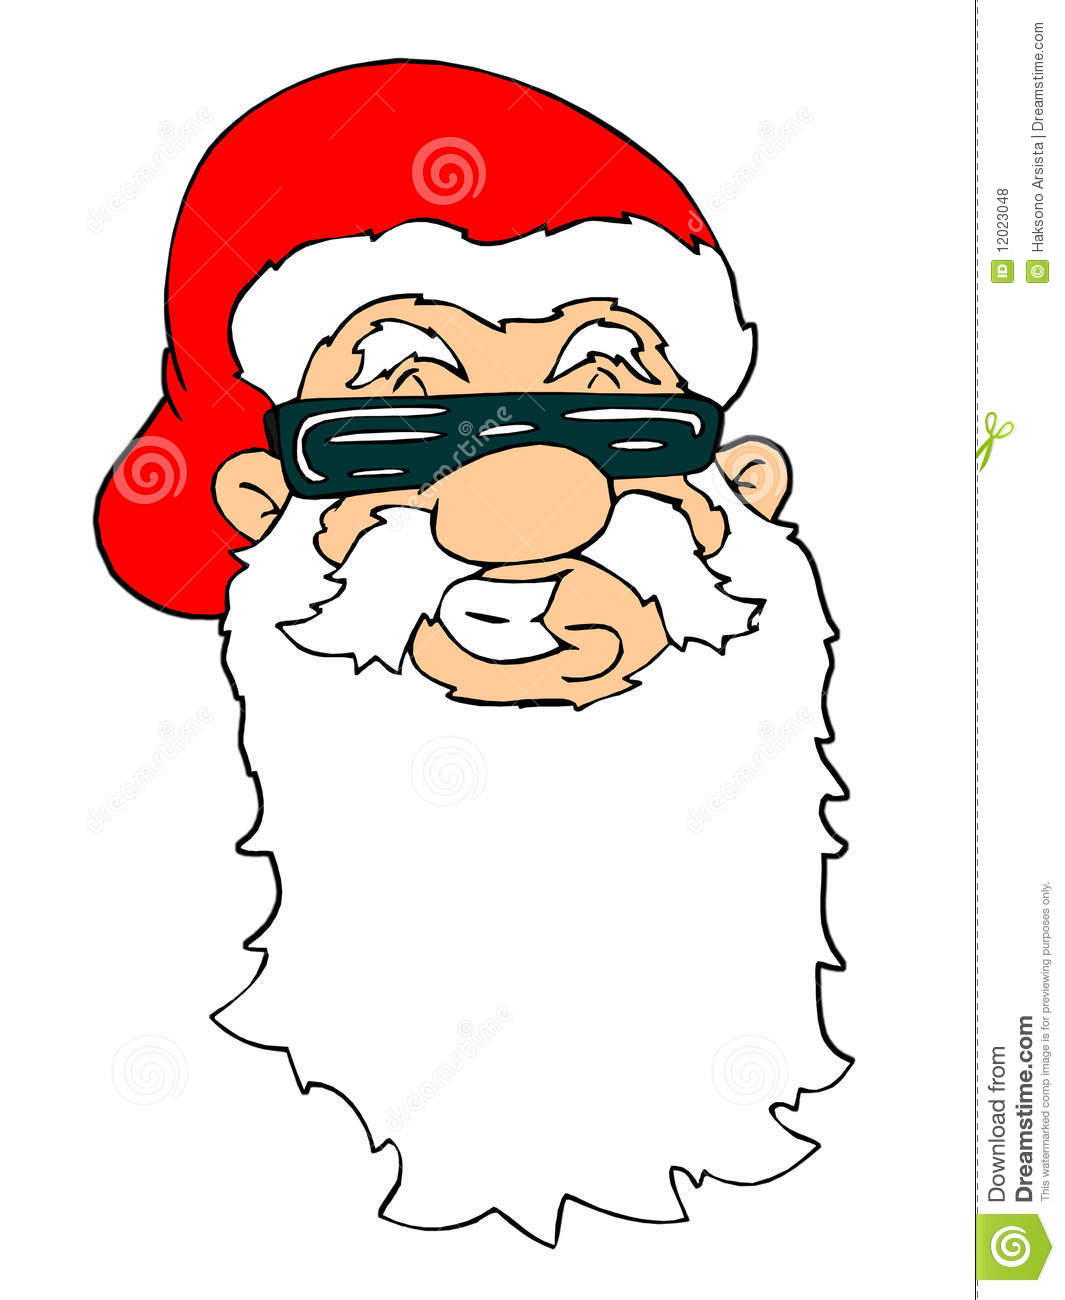 Santa face stock illustration. Illustration of noel, humor ...